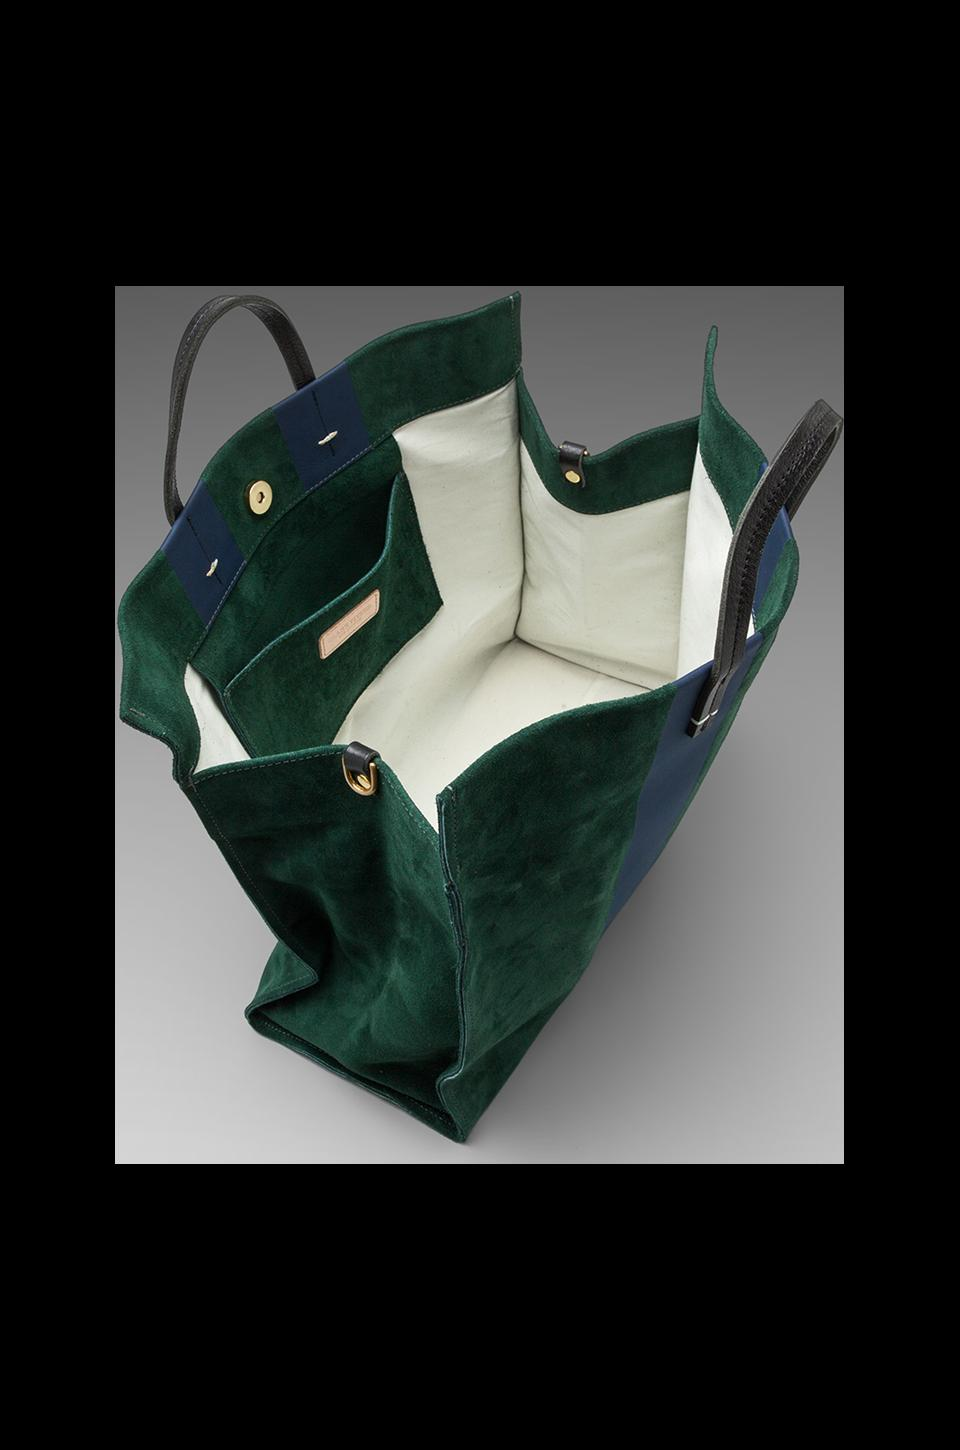 Clare V. Simple Tote in Forest Green/Navy